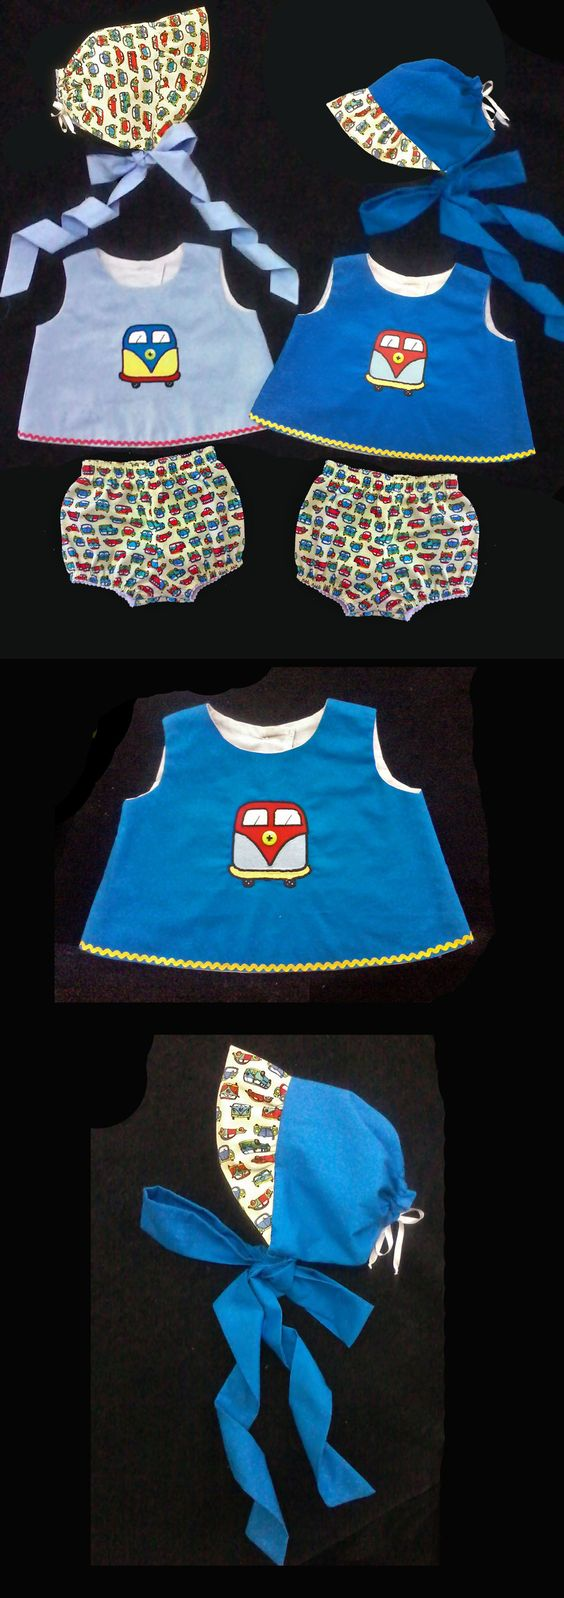 Vestidos para gêmeas. Twins Dresses  Molde grátis  no Grupo Dona Fada  Free Pattern :..................  https://www.facebook.com/groups/1594730384185604/....................... baby - infant - toddler clothes for girls - vestido - menina